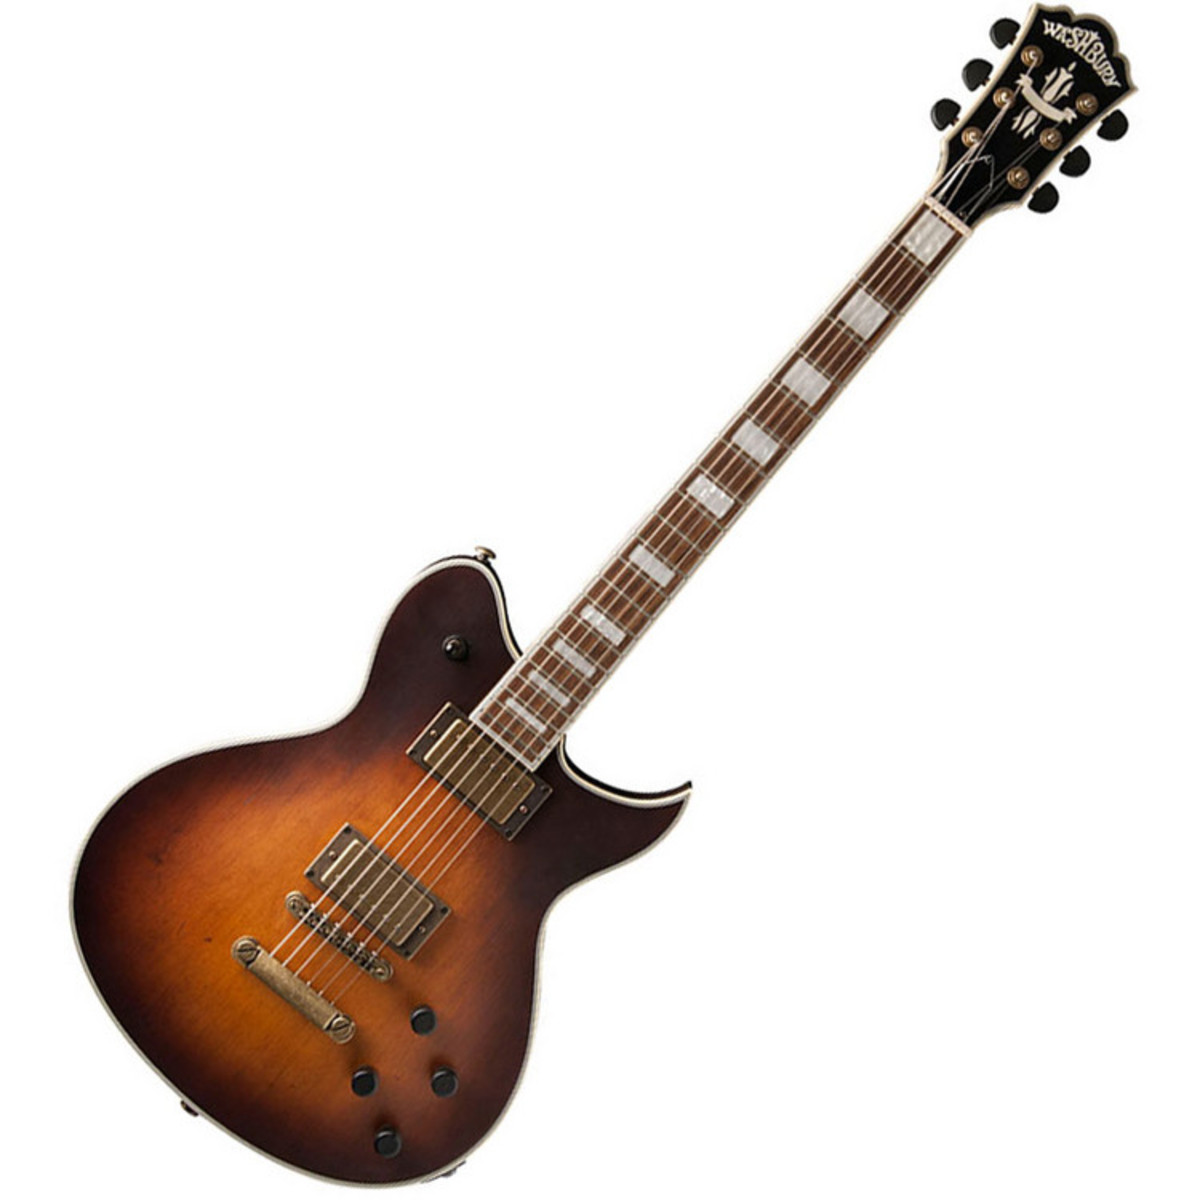 washburn wi60v idol electric guitar vintage sunburst at. Black Bedroom Furniture Sets. Home Design Ideas